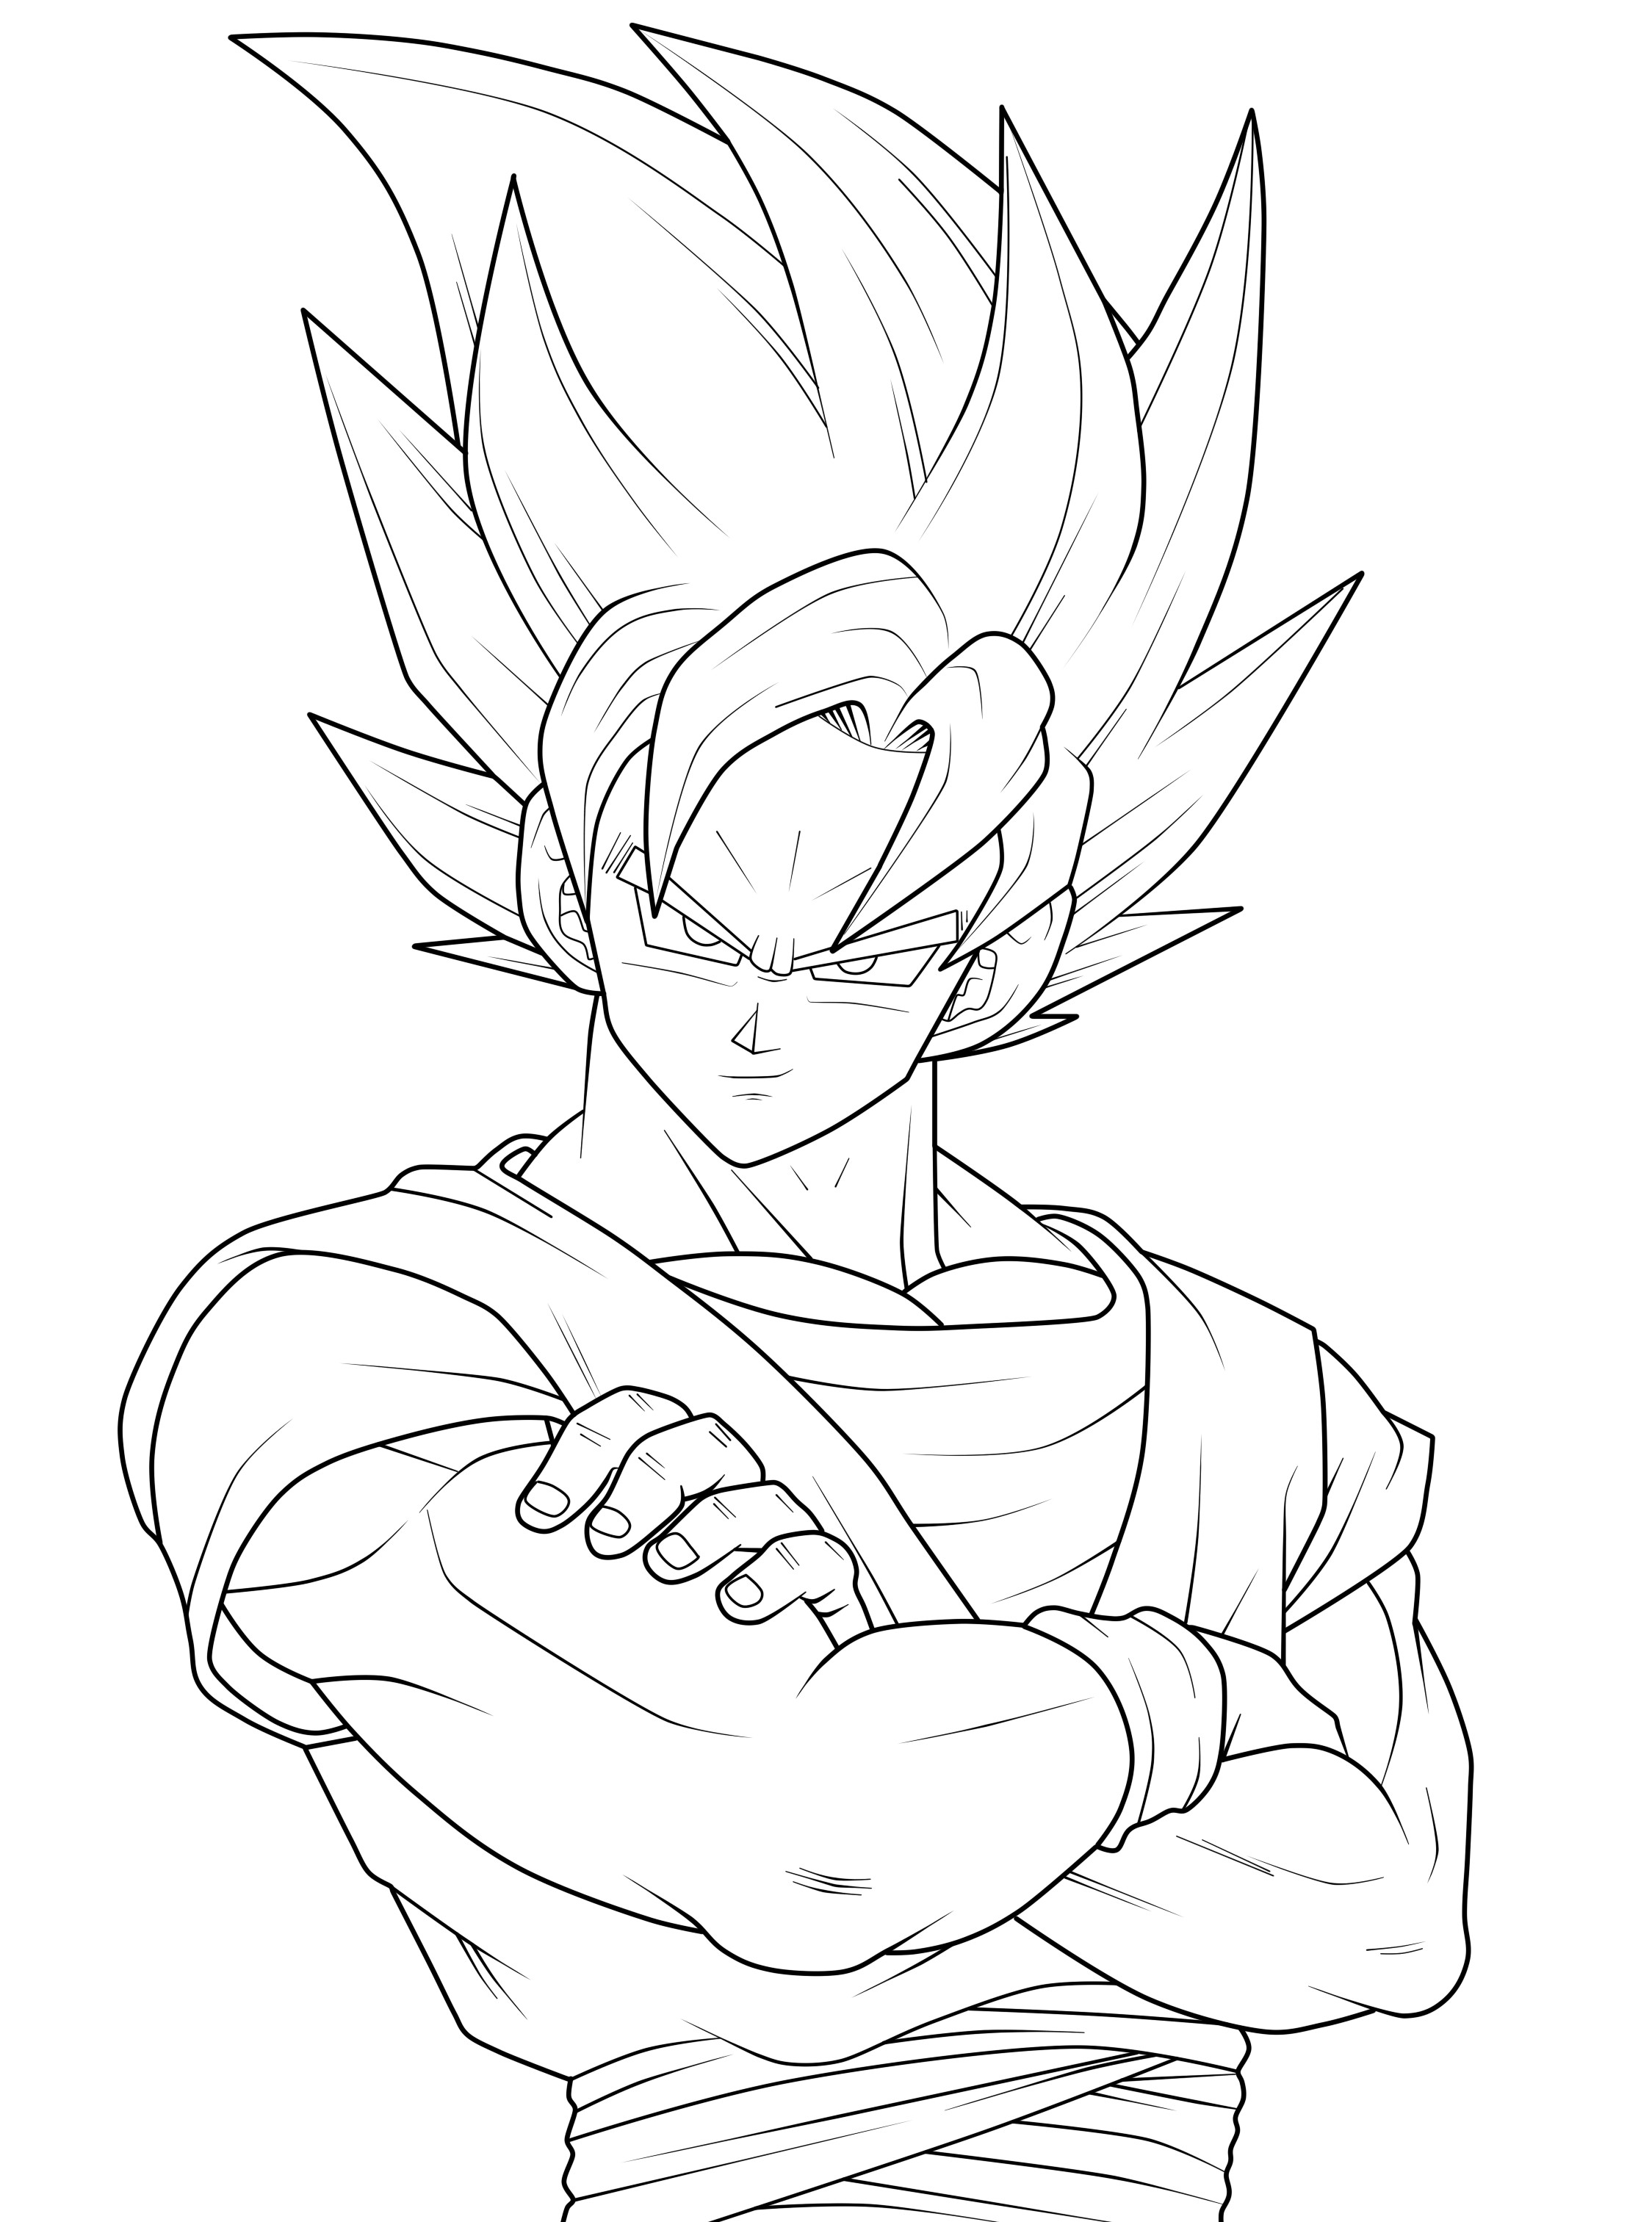 goku vs vegeta coloring pages vegeta and goku coloring pages at getdrawings free download vs goku coloring vegeta pages